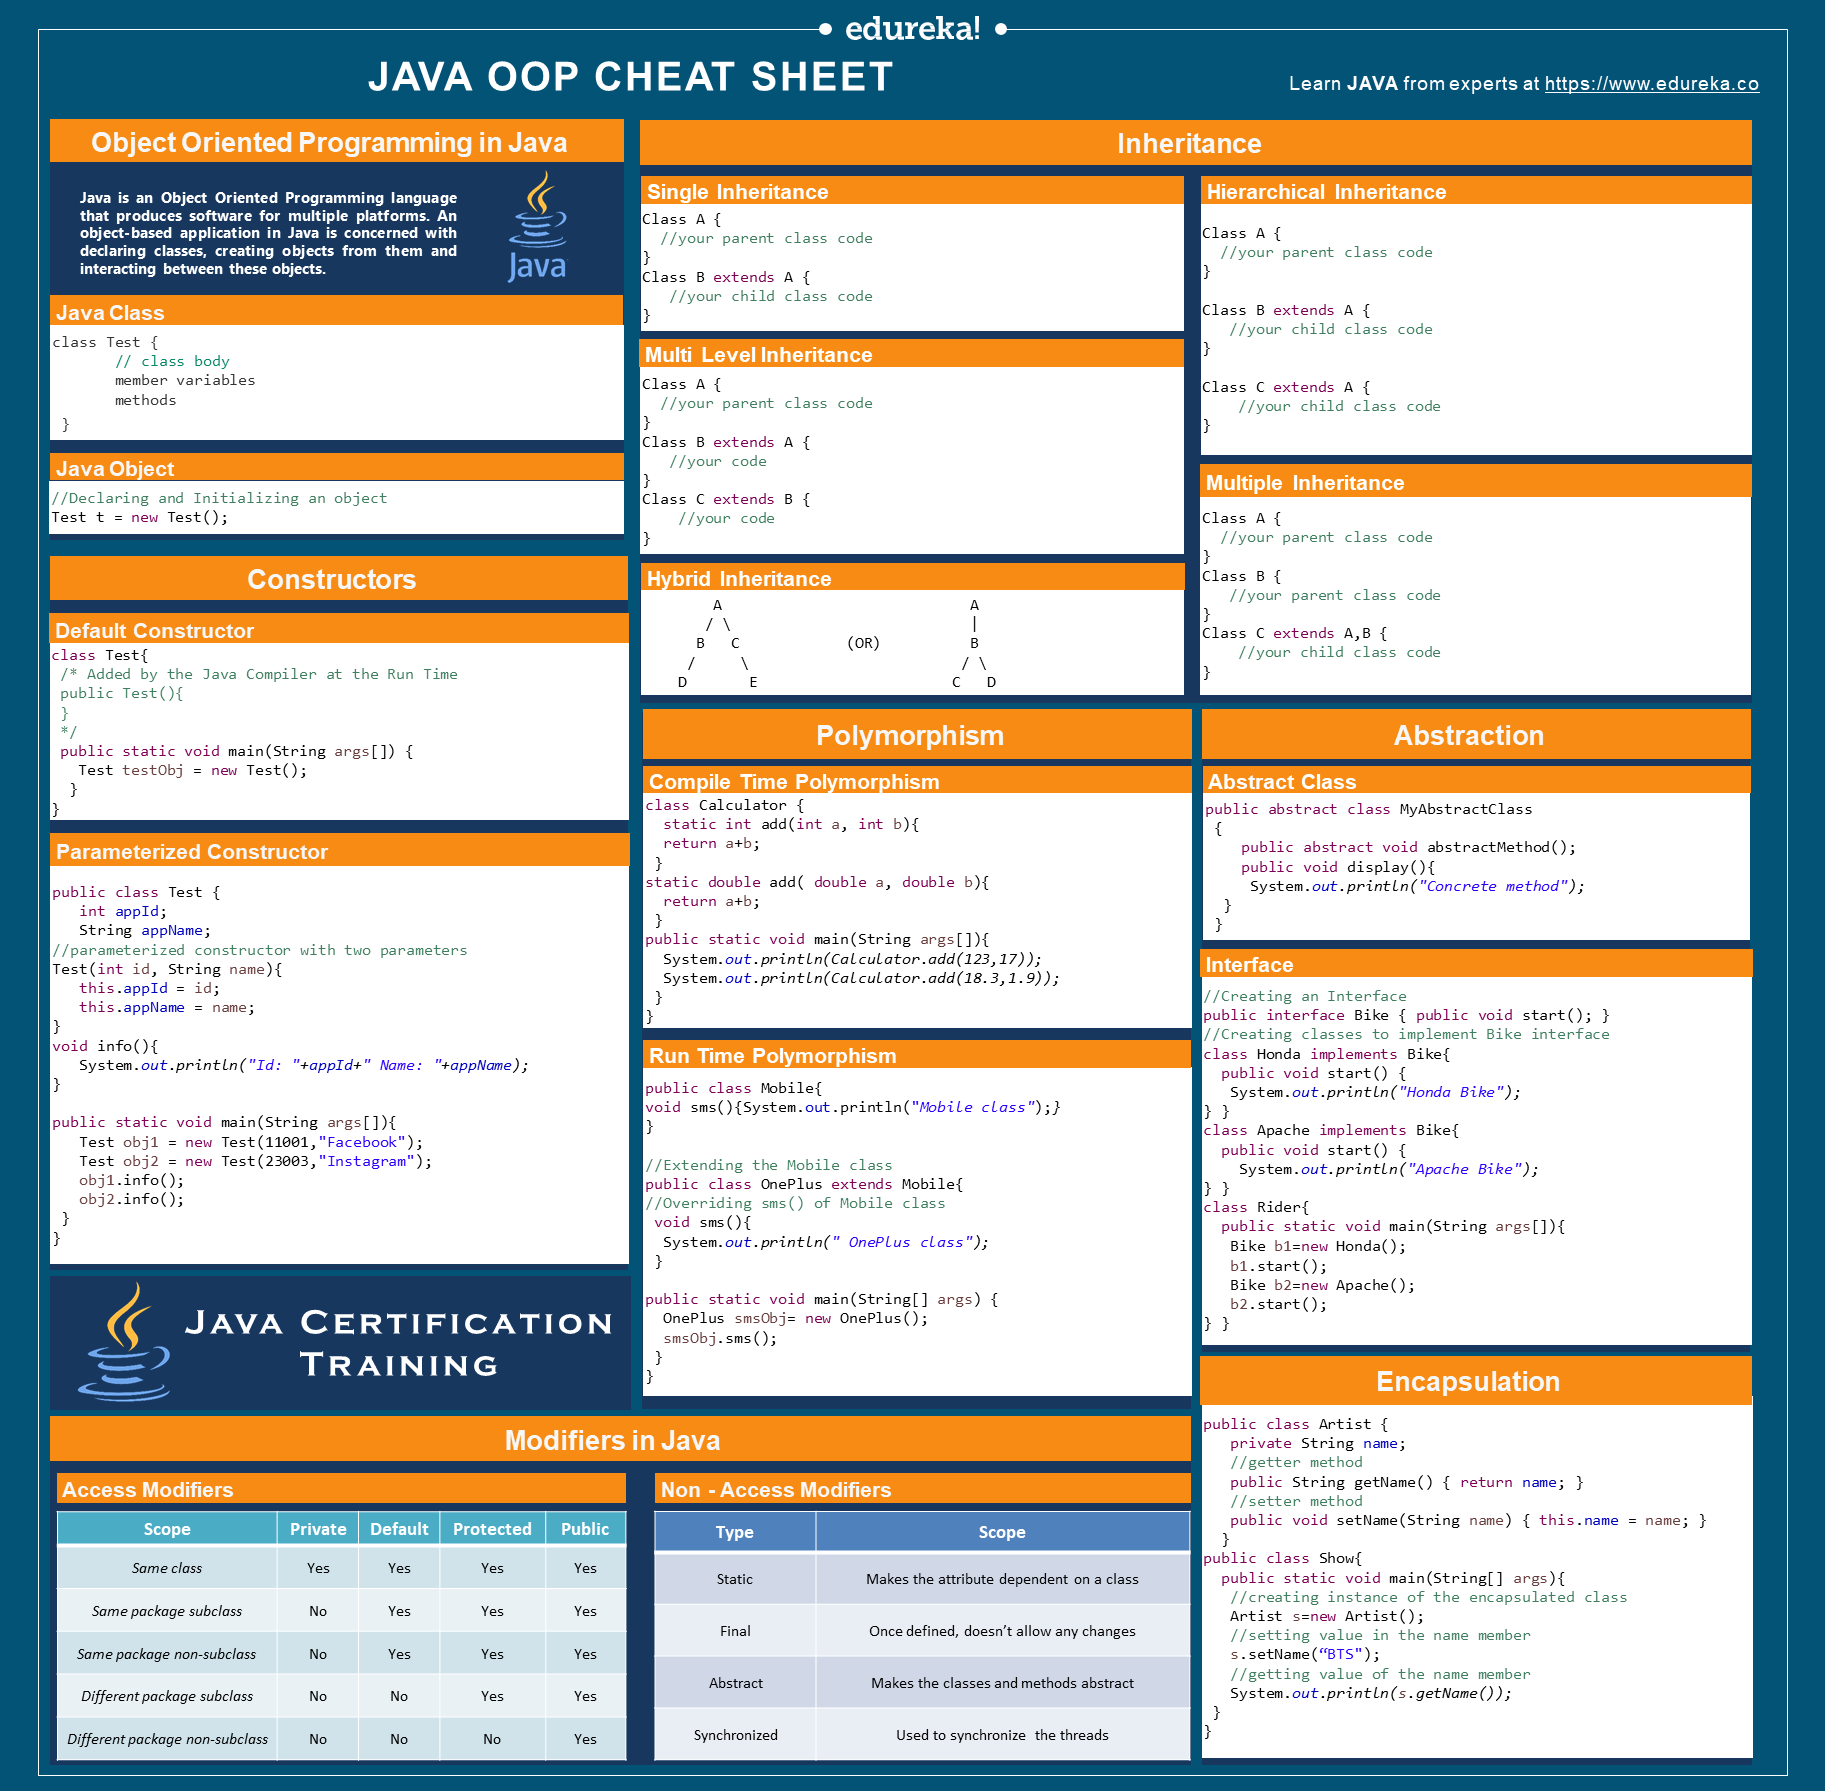 Java Oop Cheat Sheet A Quick Guide To Object Oriented Programming In Java By Swatee Chand Edureka Medium